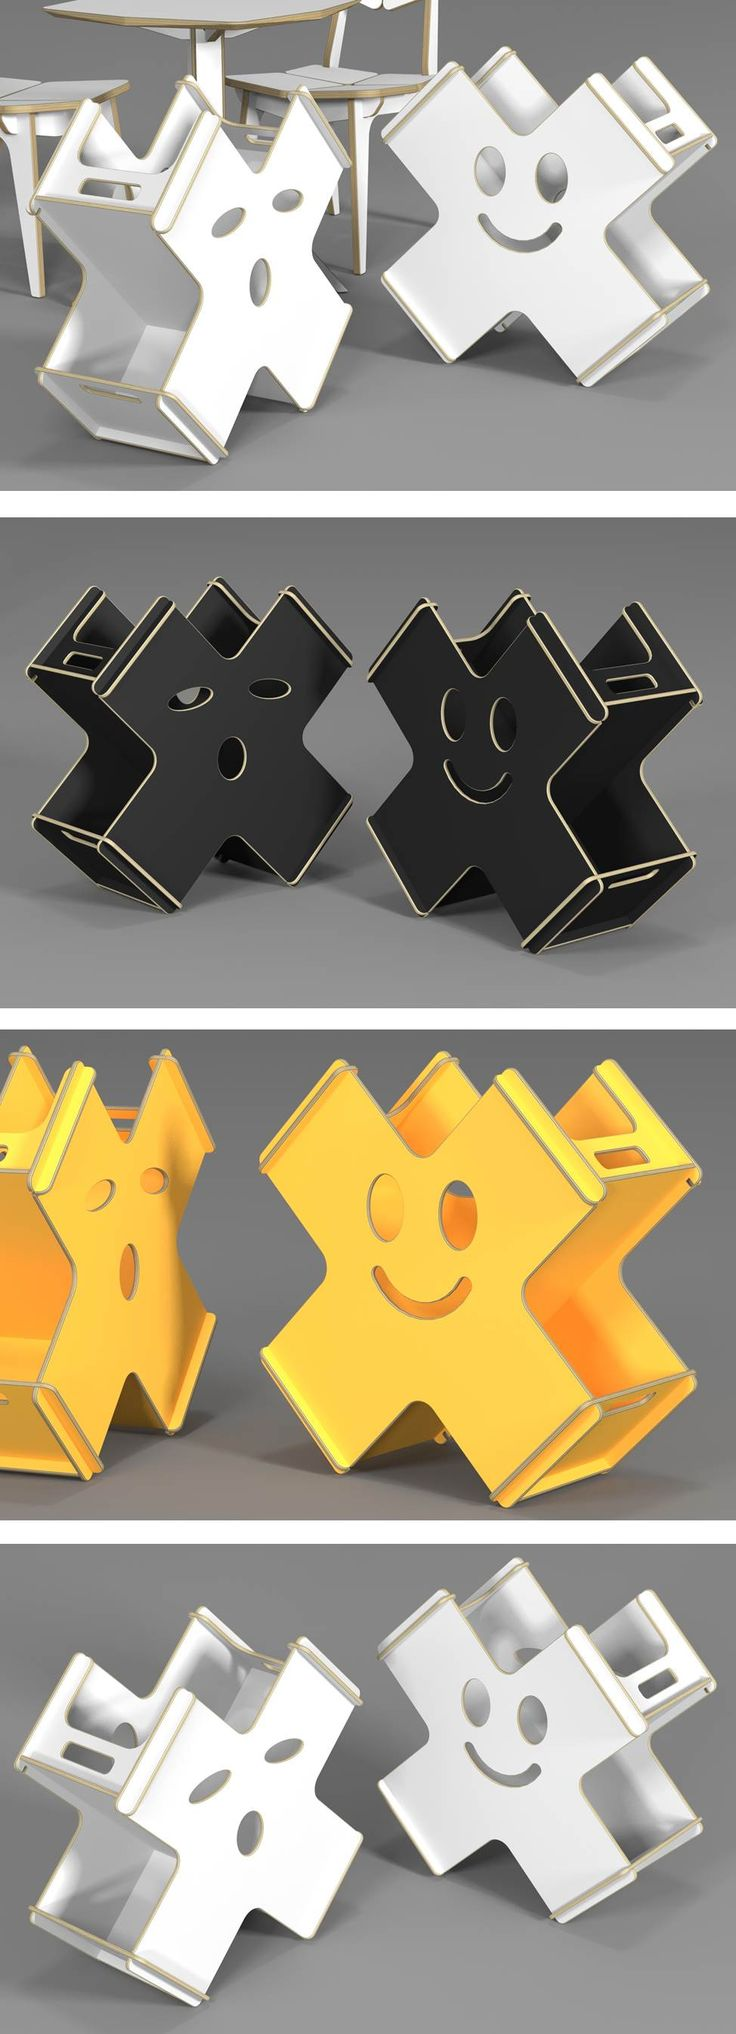 JOIN X BOX / TOY BOX / CNC ROUTER  /  3D DESIGN / PLYWOOD FURNITURE /  유창석www.joinxstudio.com